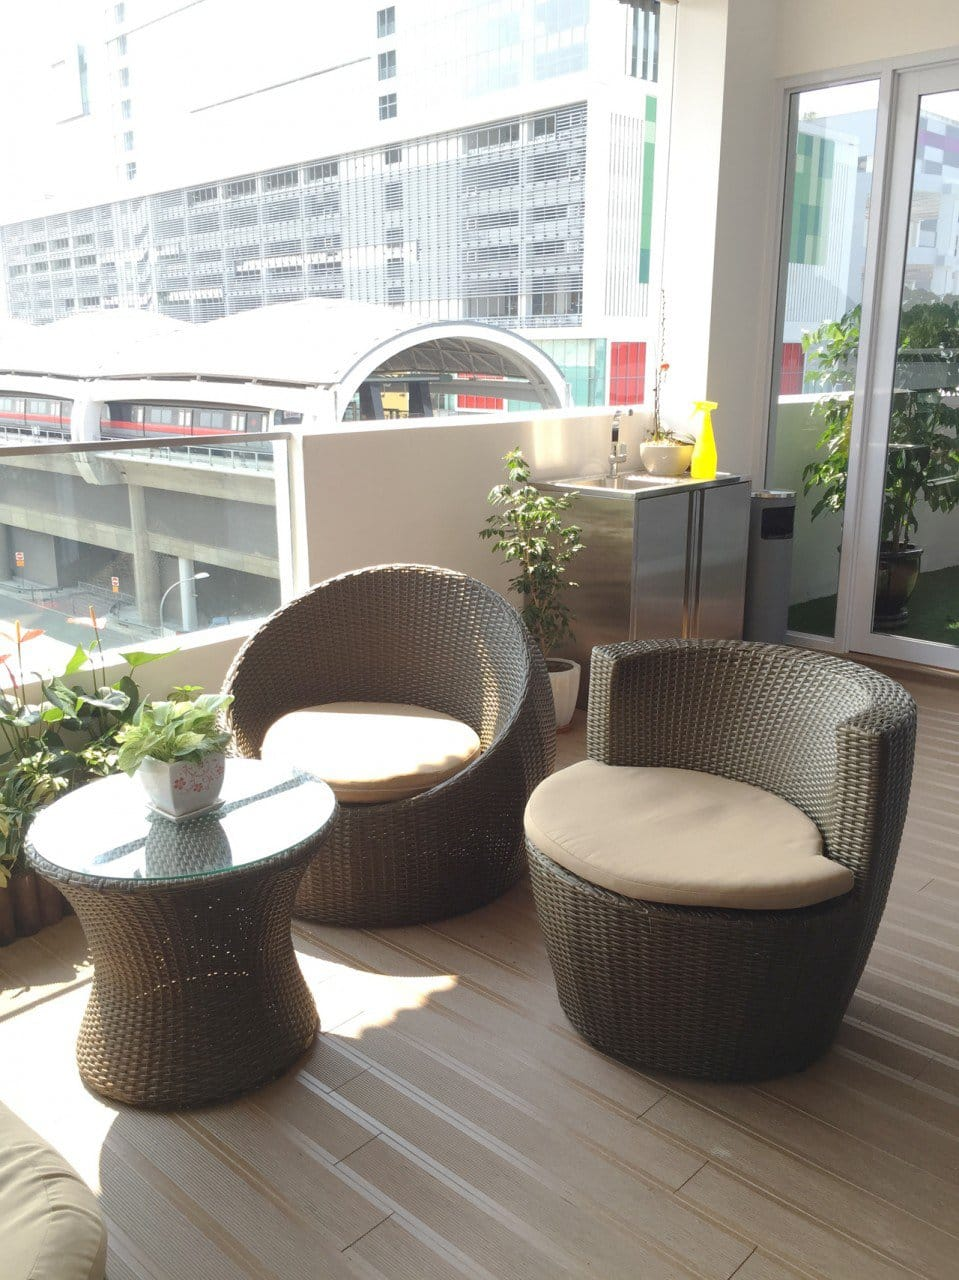 Wong Fong Engineering Works Pte Ltd 79 Joo Koon Circle | Product Seen: [Tirra Outdoor Coffee Table & Tirra Outdoor Chair]<br />